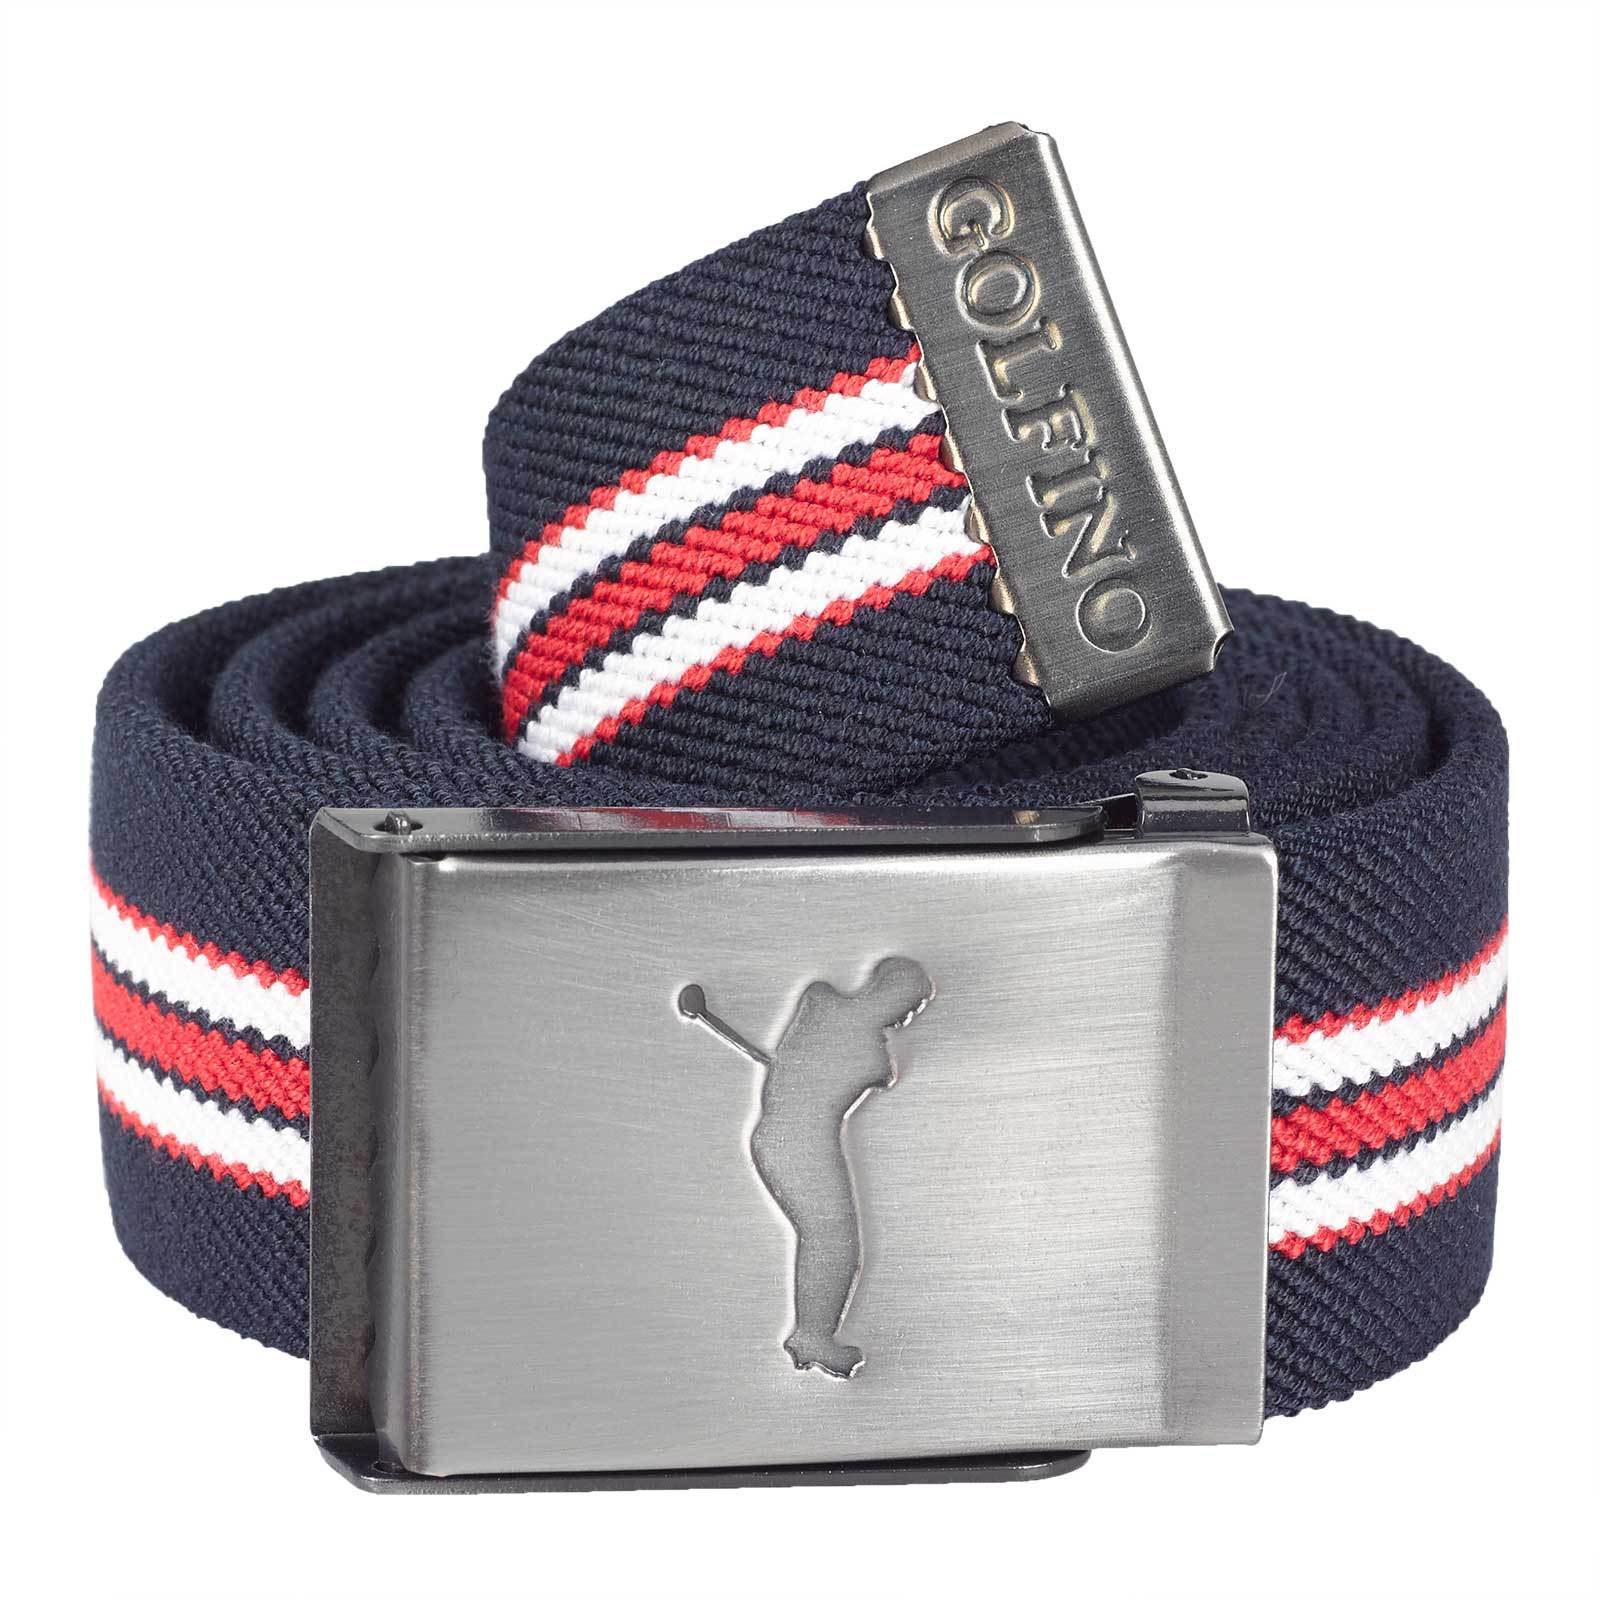 Men's comfort stretch golf belt made from fine woven fabric with reversable functional